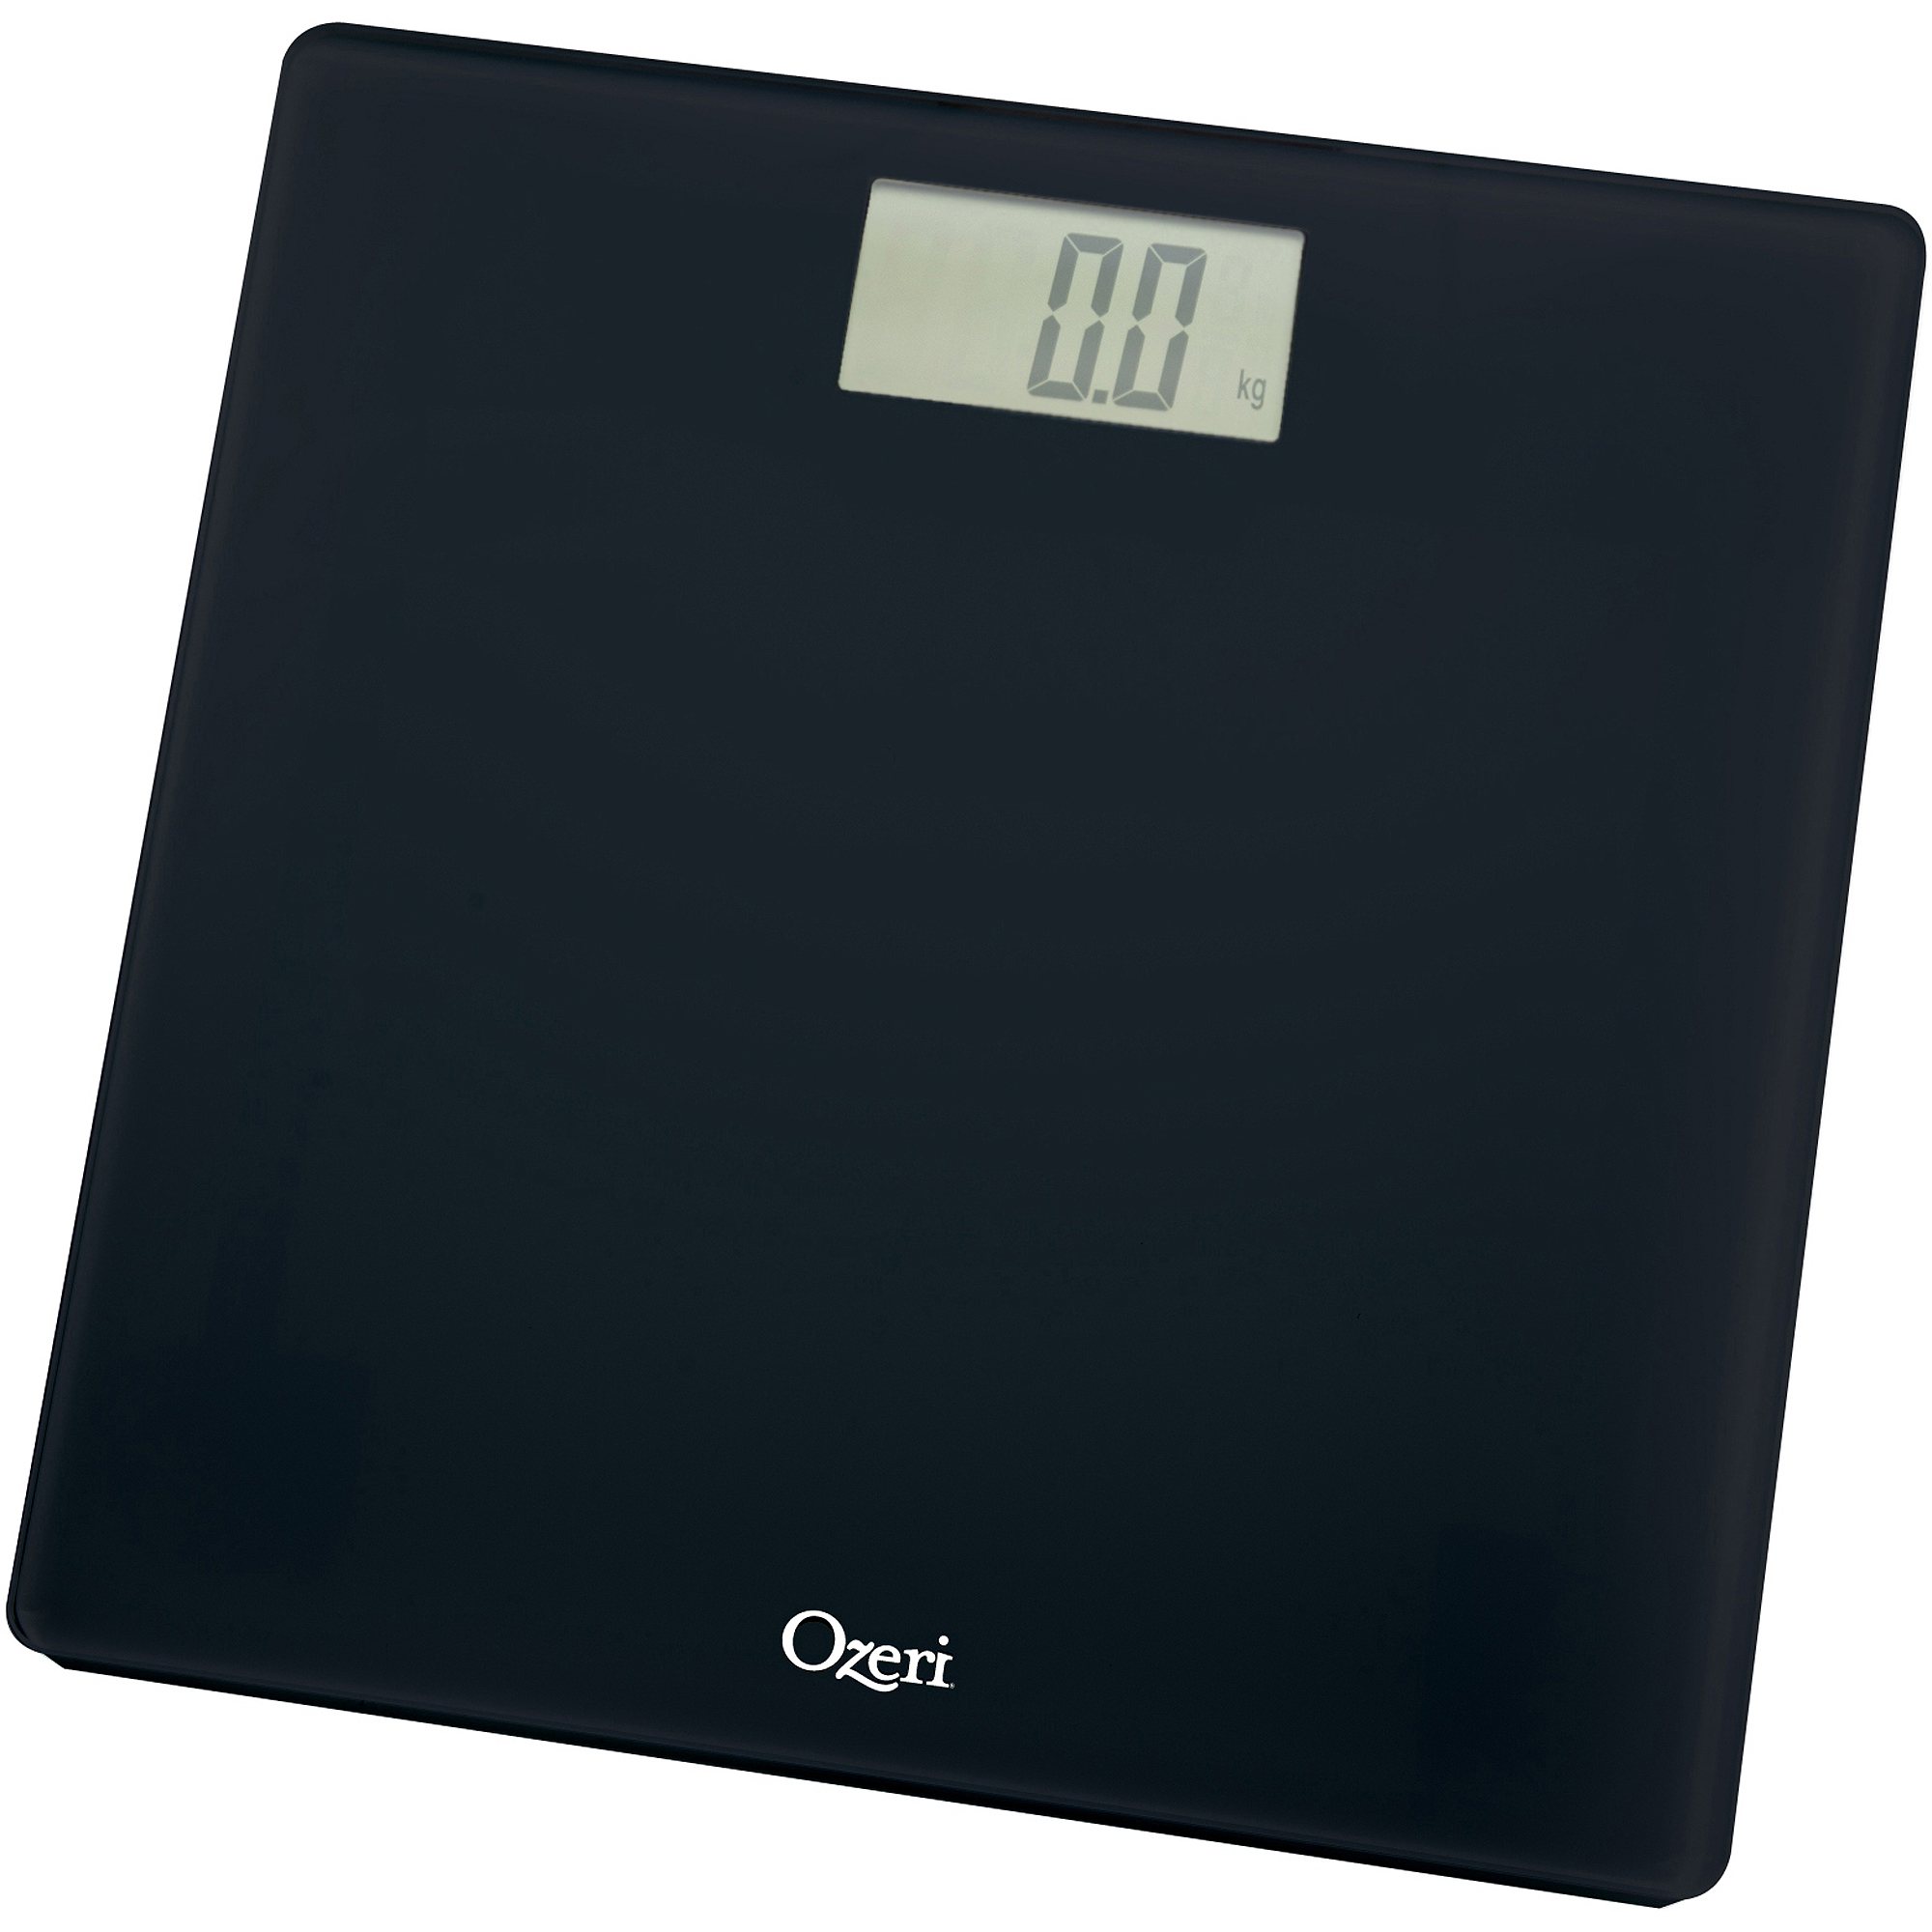 Bathroom scales boots - Ozeri Precision Digital Bath Scale 400 Lbs Edition In Tempered Glass With Step On Activation Black Walmart Com